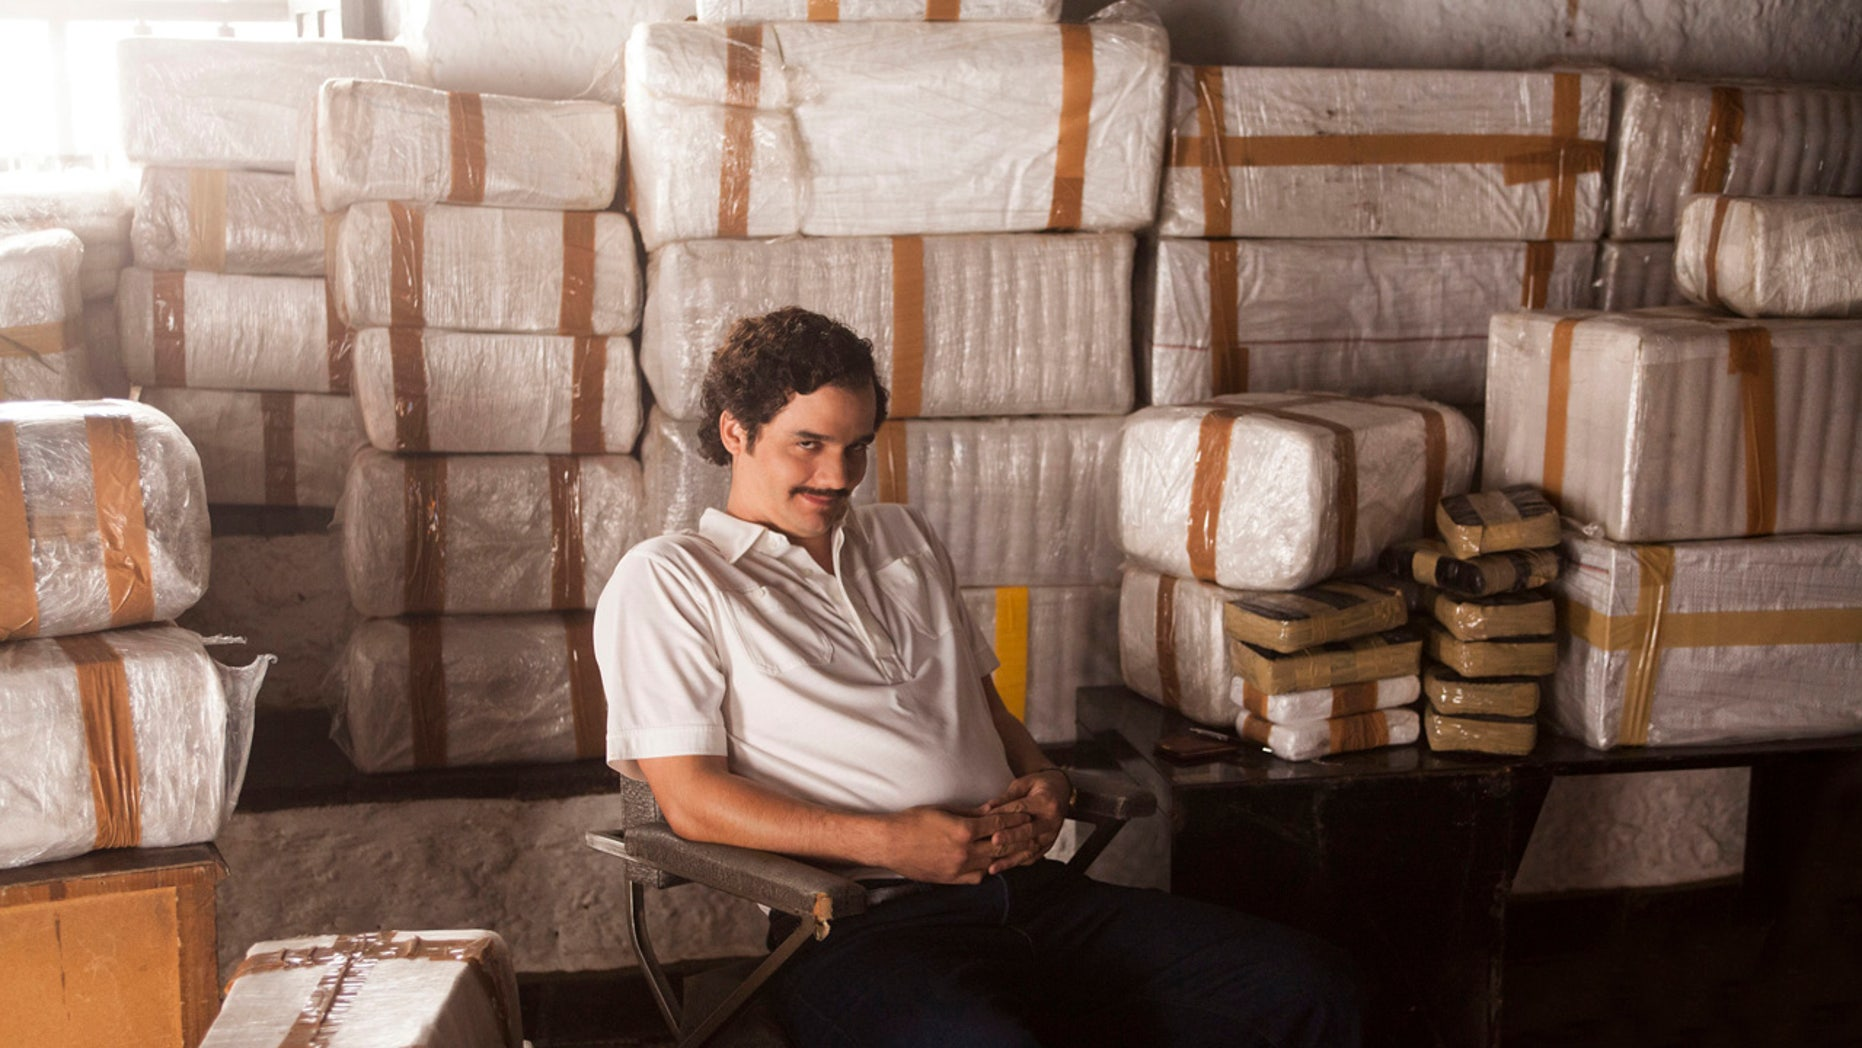 Wagner Moura stars as Pablo Escobar in the popular Netflix series.